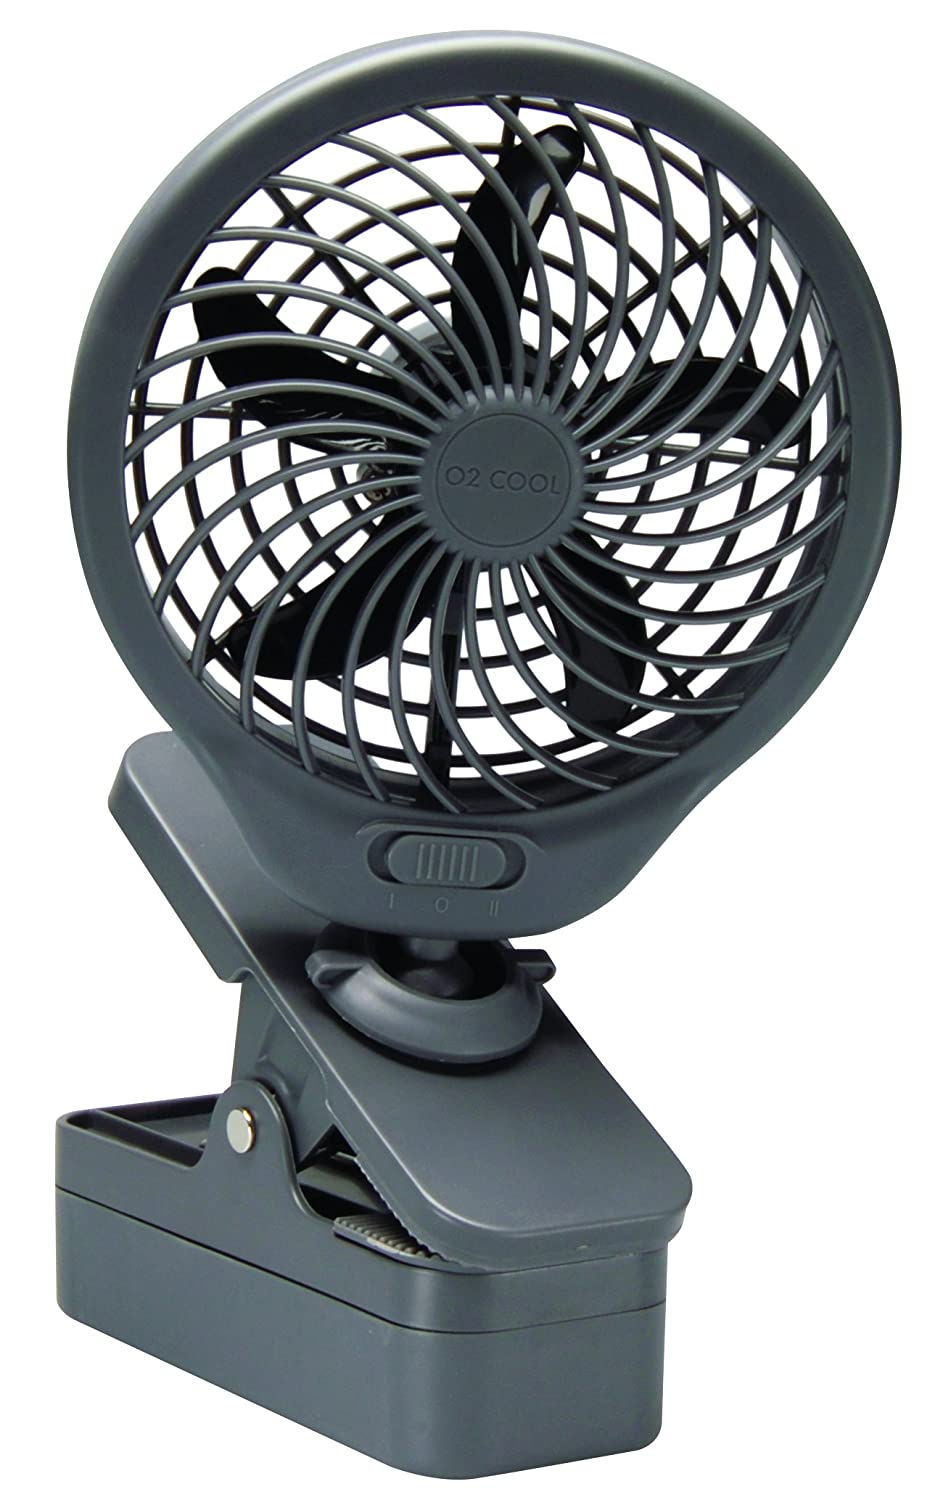 clip fan battery operated portable travel cooling for home office or stroller ebay. Black Bedroom Furniture Sets. Home Design Ideas